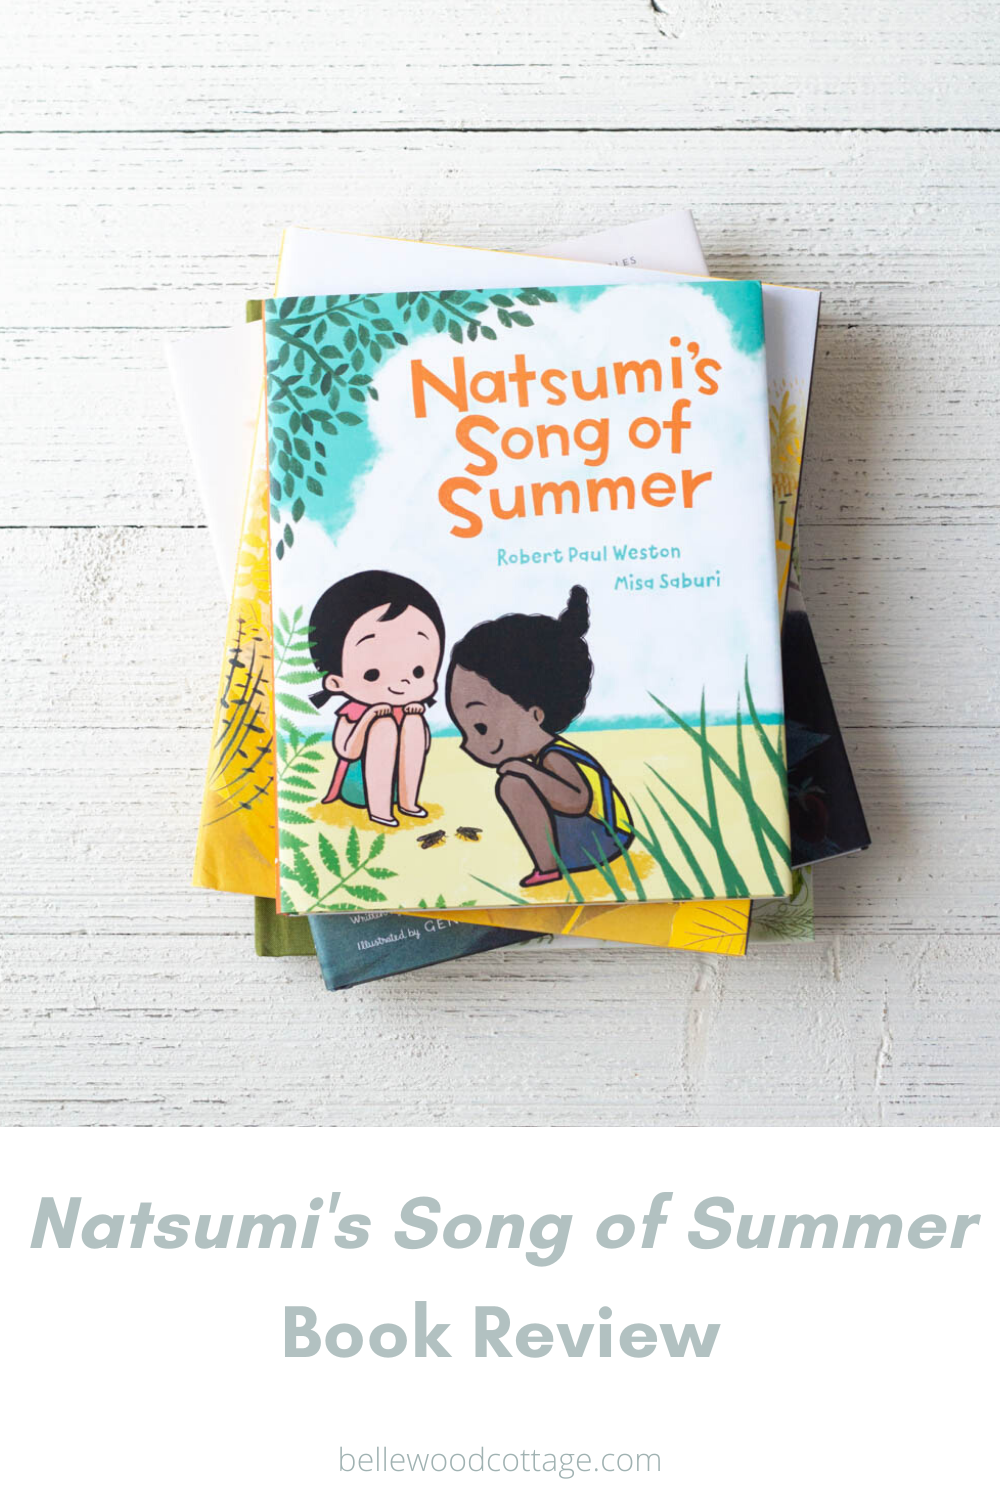 A picture book (titled Natsumi's Song of Summer) on a wooden background.